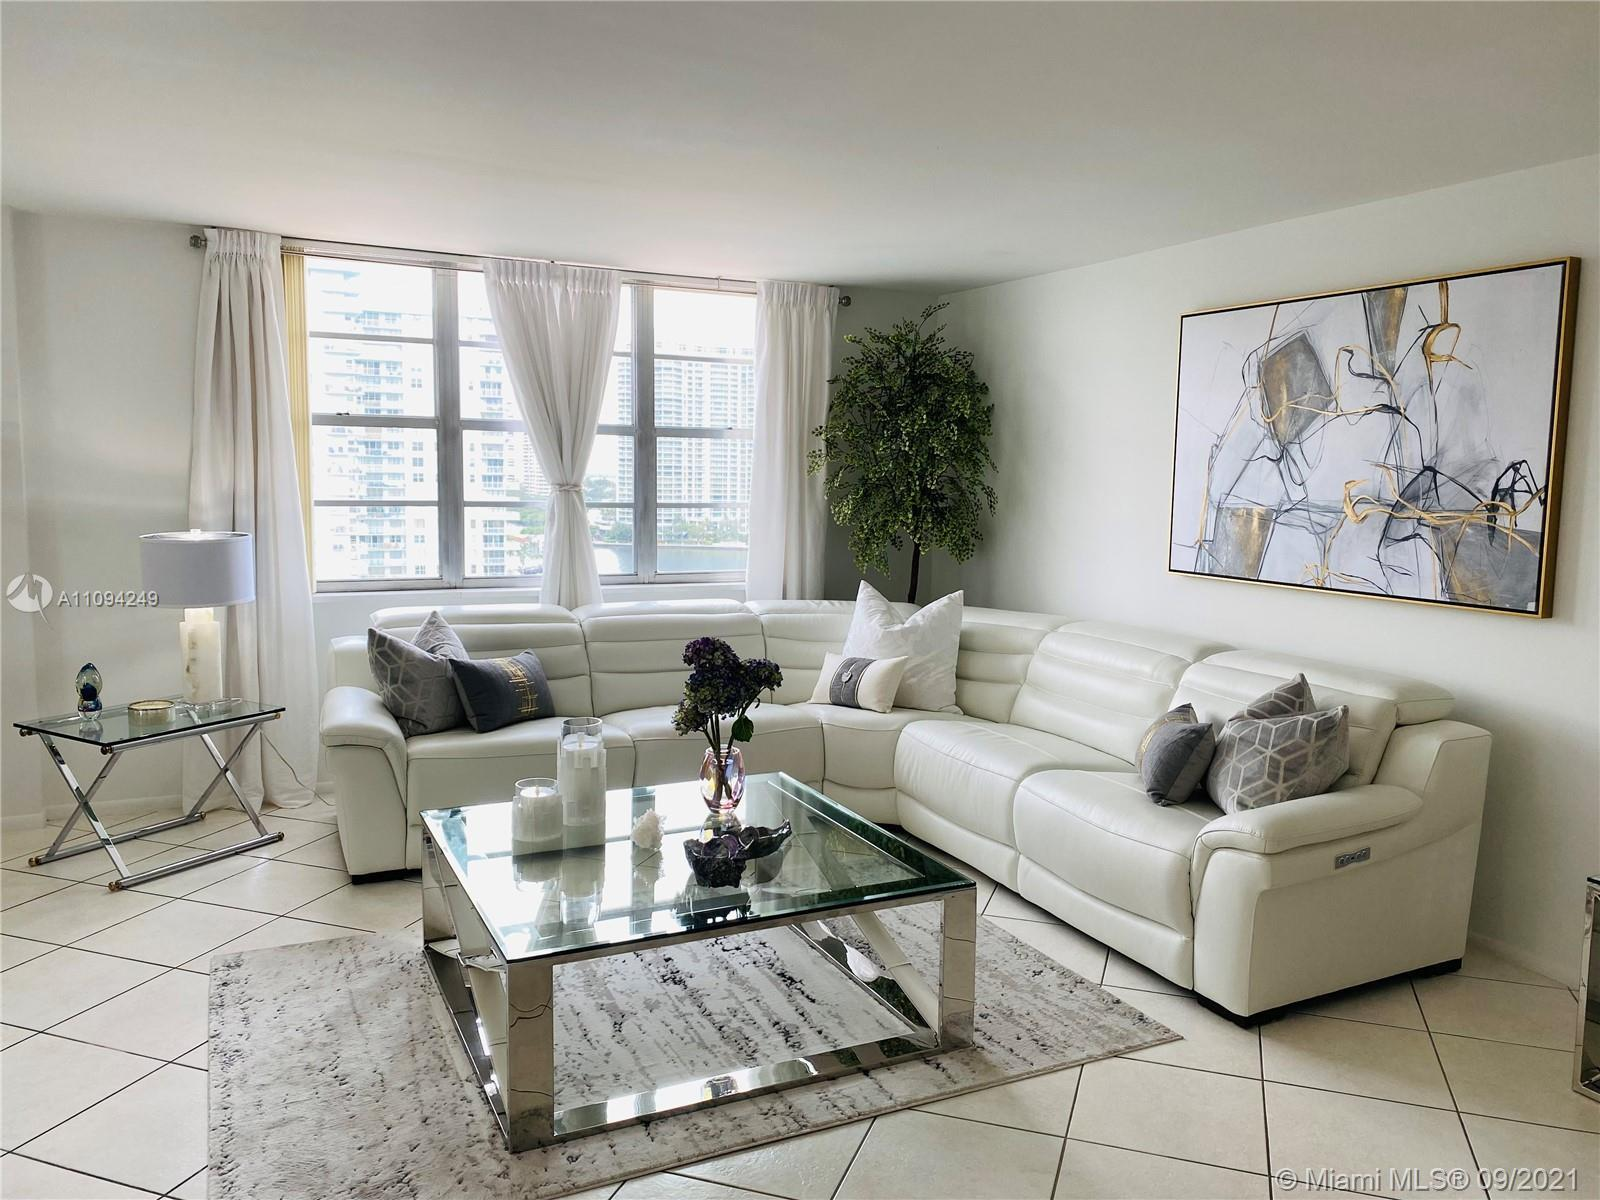 BEAUTIFUL, LARGE 2B/2B CORNER APARTMENT WITH GORGEOUS VIEWS OF THE WATER AND SUNNY ISLES BEACH SKYLI